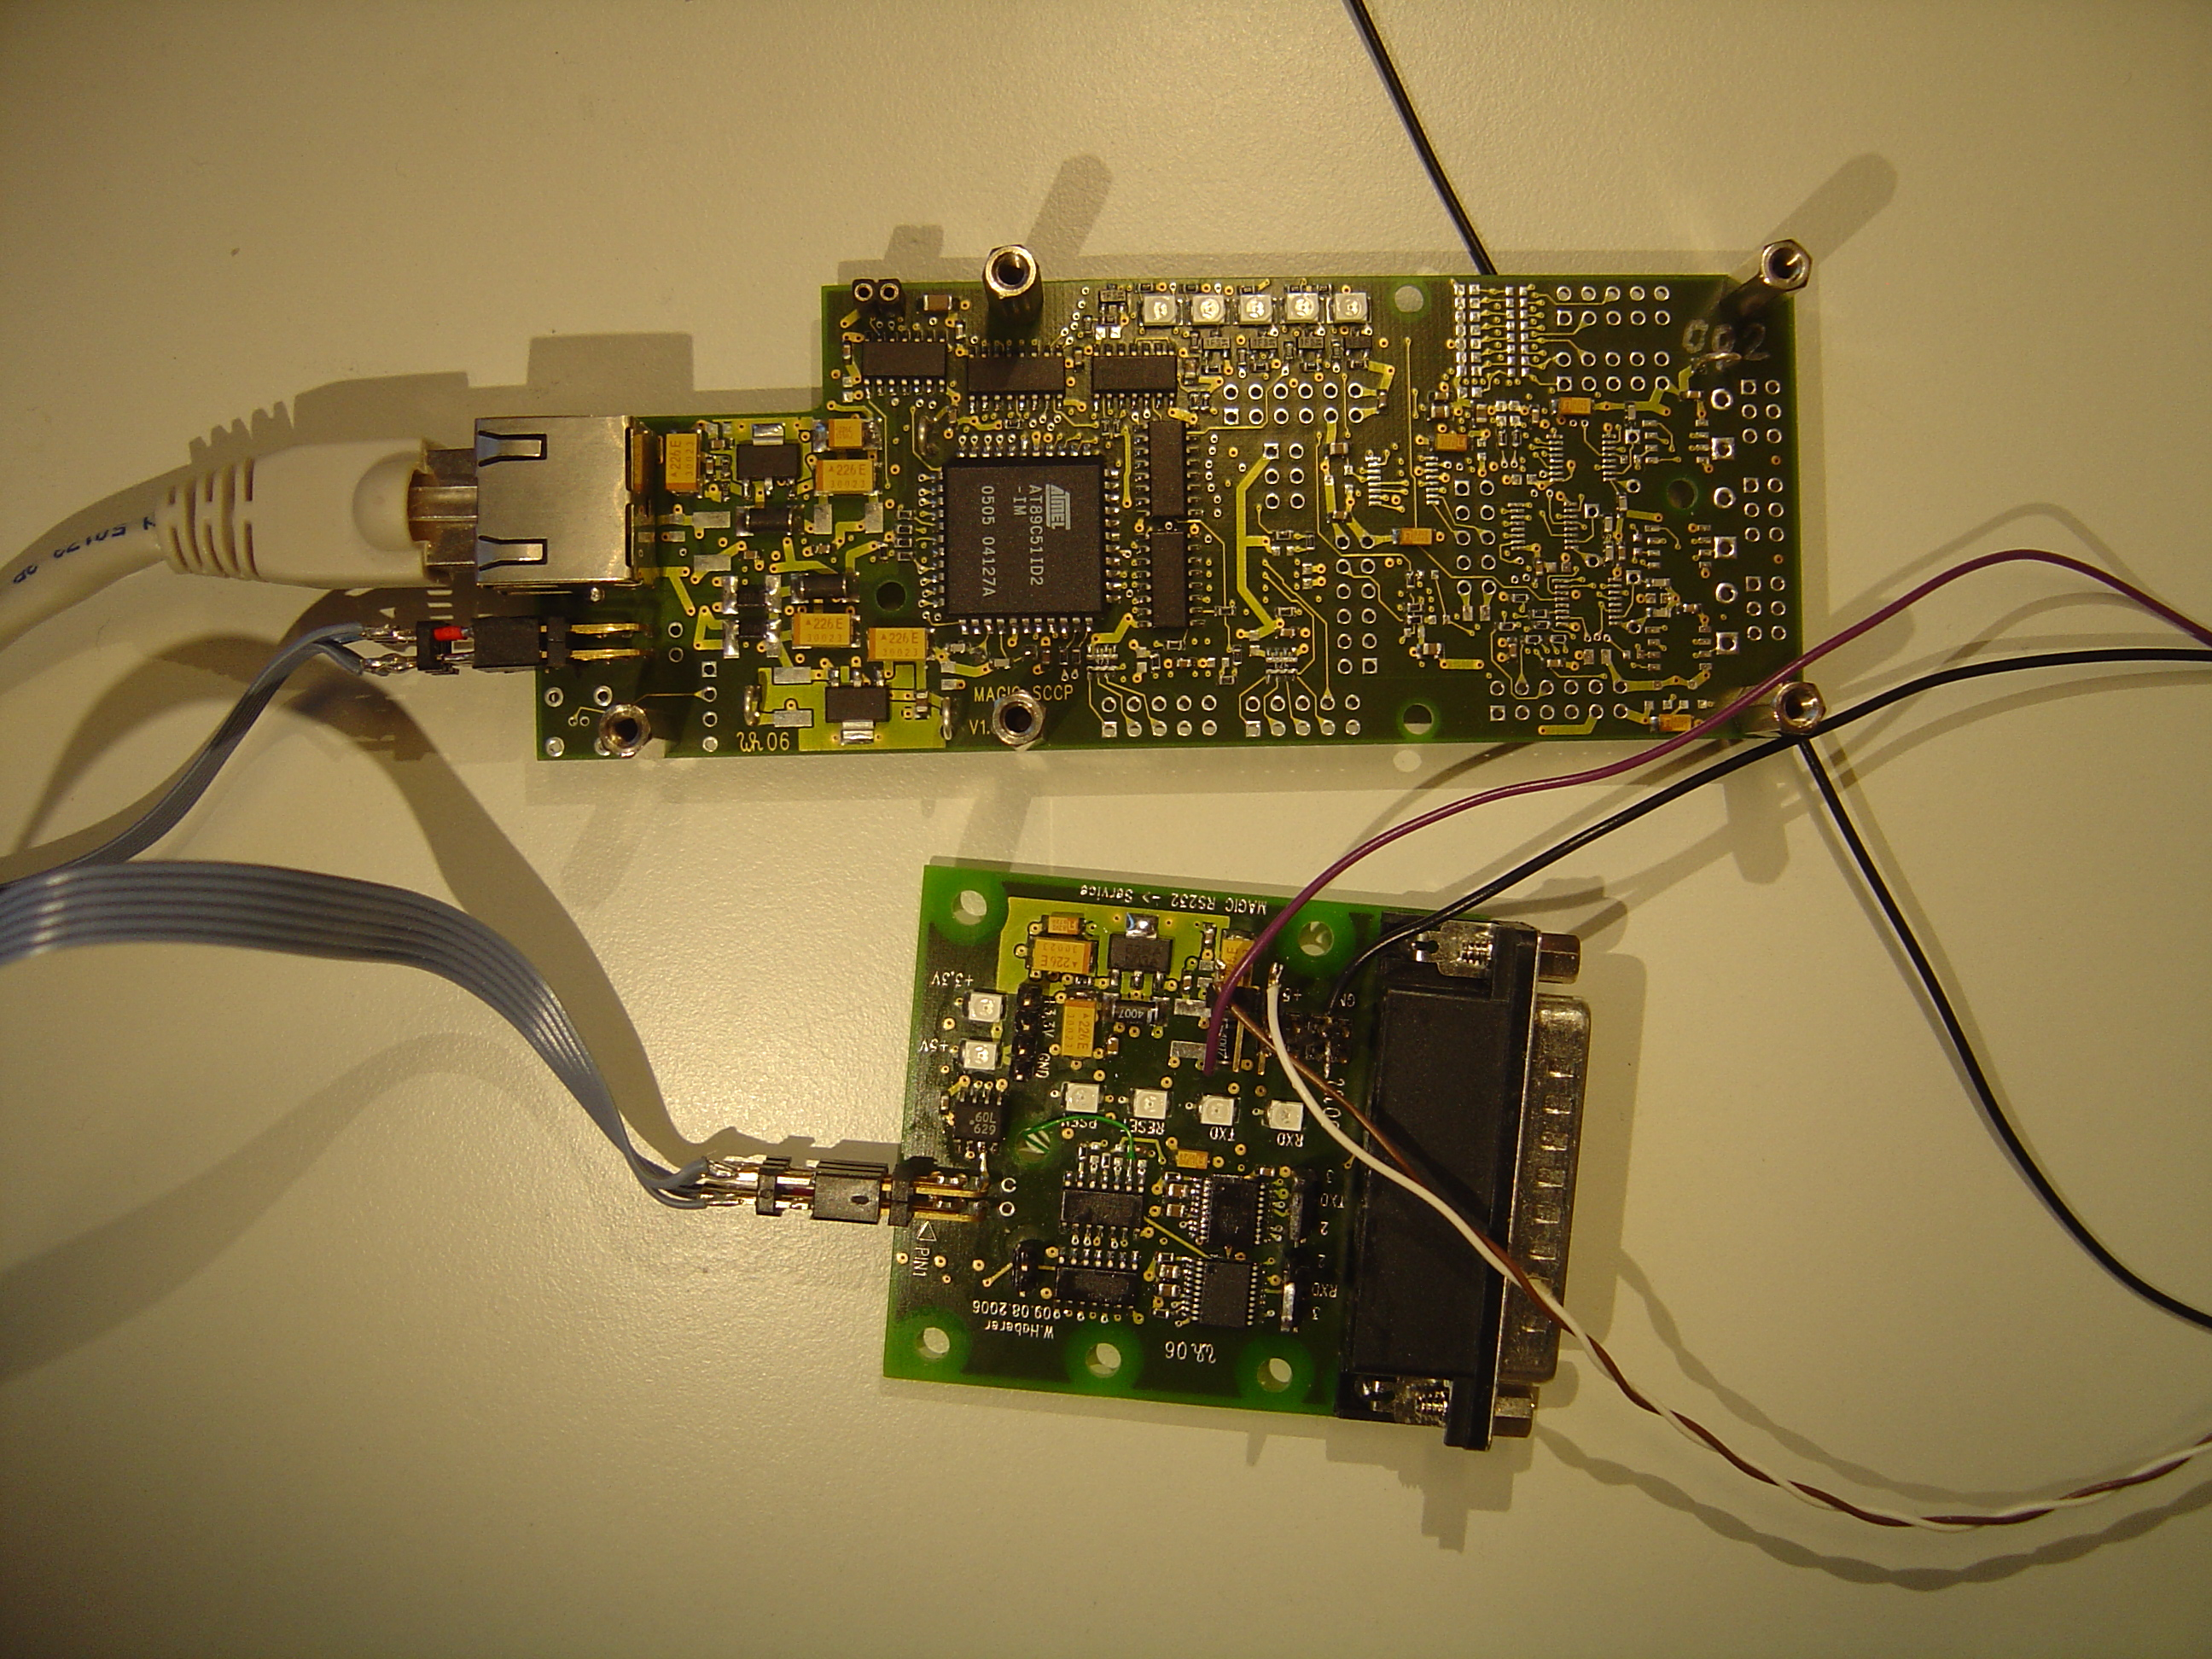 The Slow Control For Magic Ii Whaberer Circuit Boards Like Appears Sccp And Service Board Top